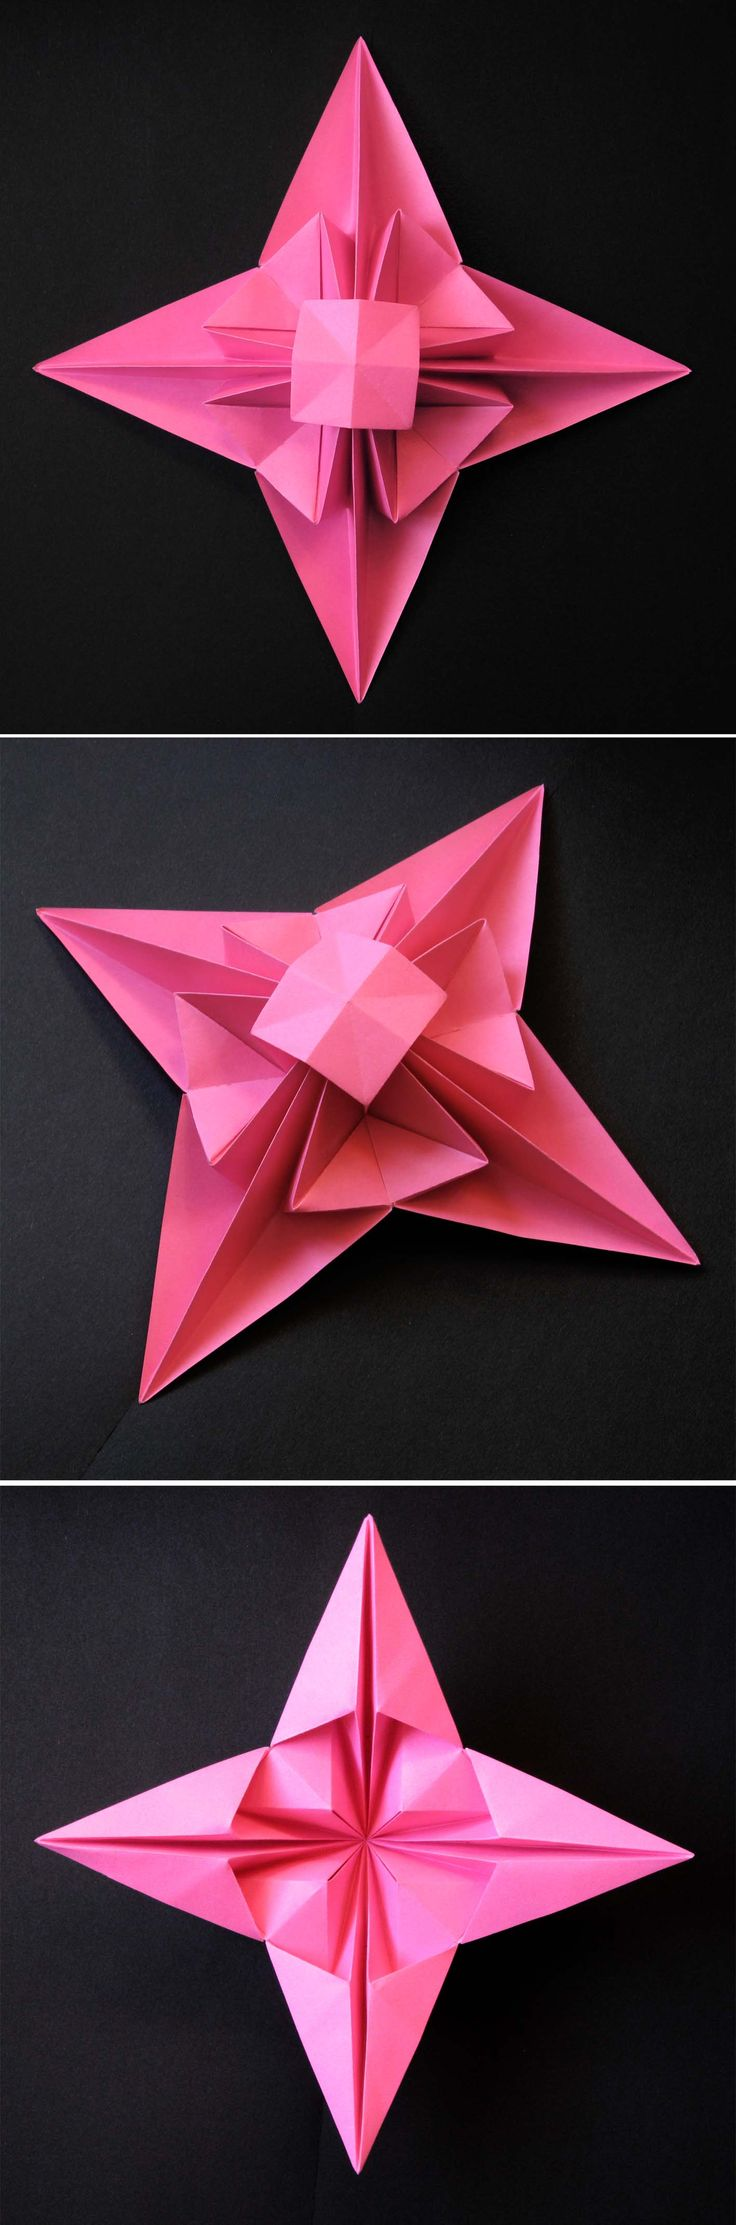 Origami folding flowers stars and animals as nursery room decoration - 3d Star Origami From One Uncut Square Of Copy Paper 21 X 21 Cm